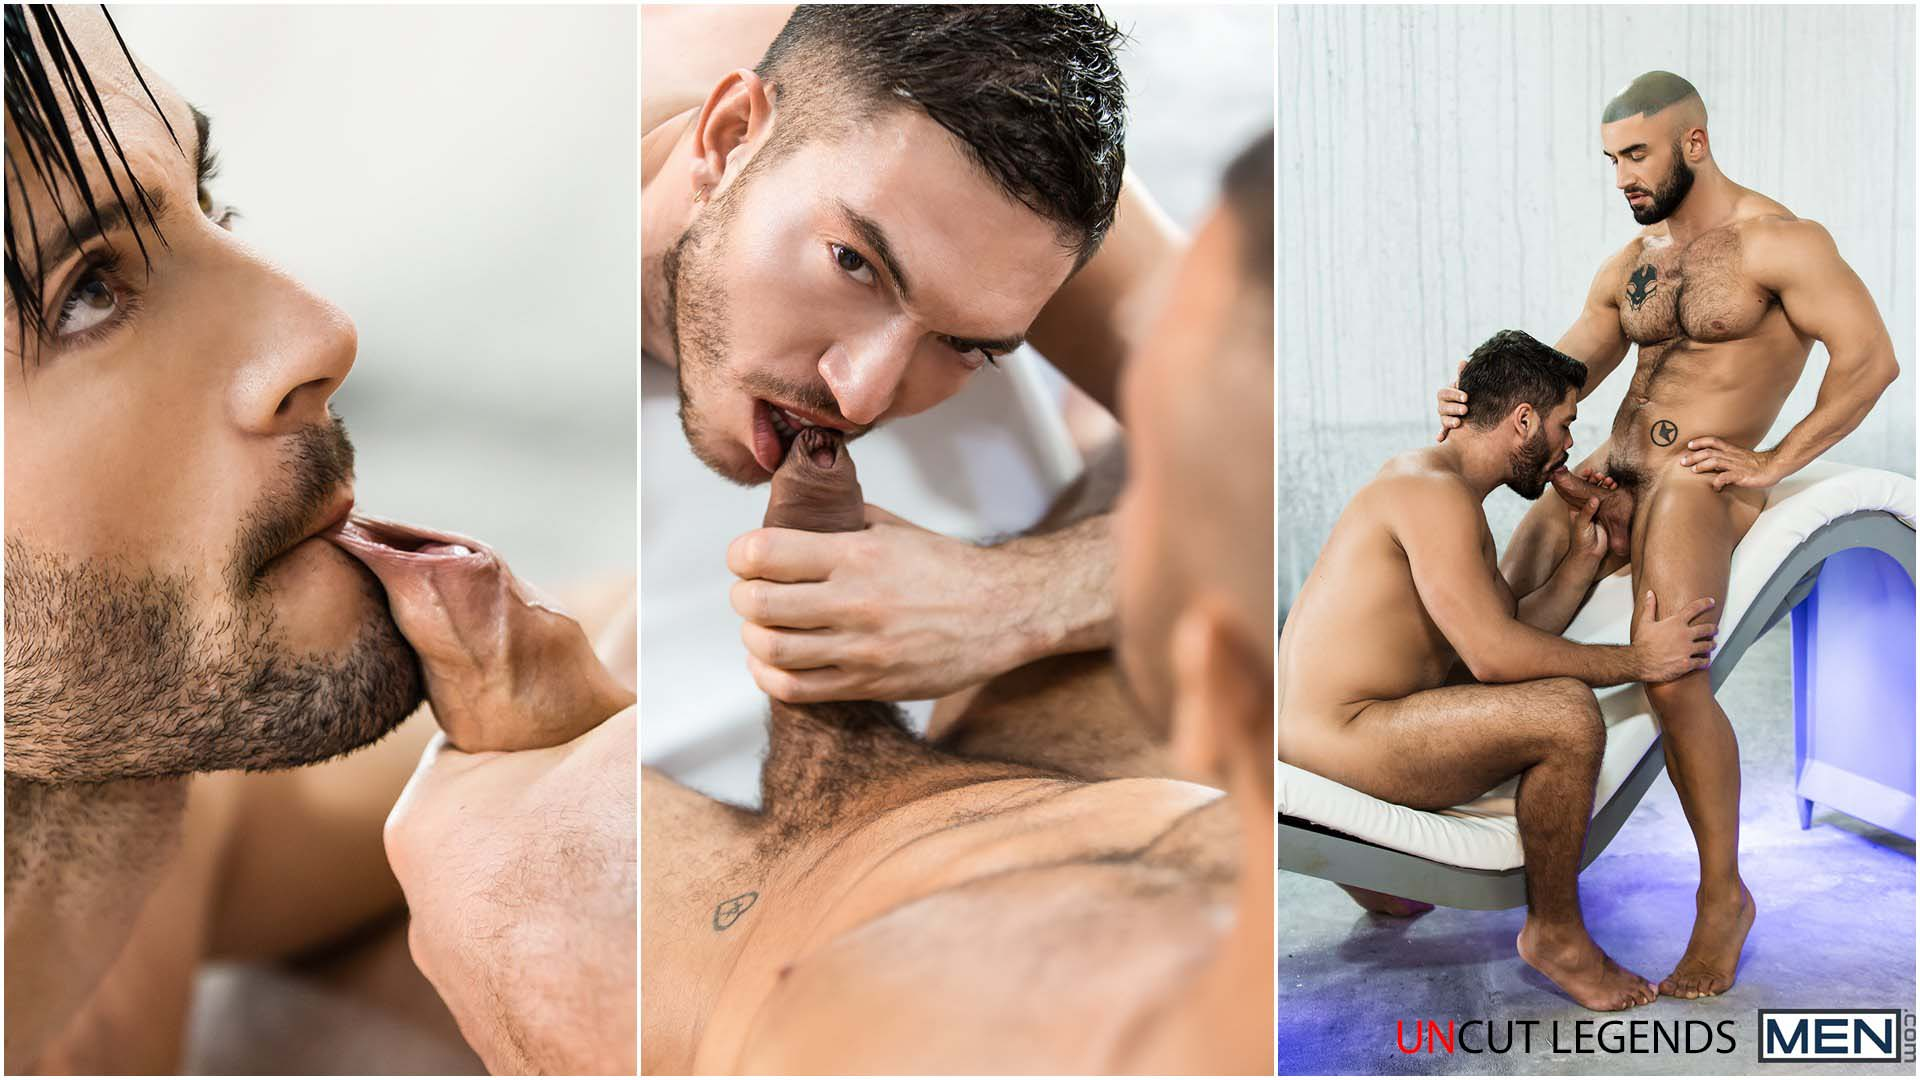 Photo of Uncut Legends: Dato Foland, Damien Crosse y Francois Sagat leyendas del porno con pollas sin circuncidar se follan a Andy Star, Rico Fatale y Nicolas Brooks | Alter Sin | MEN